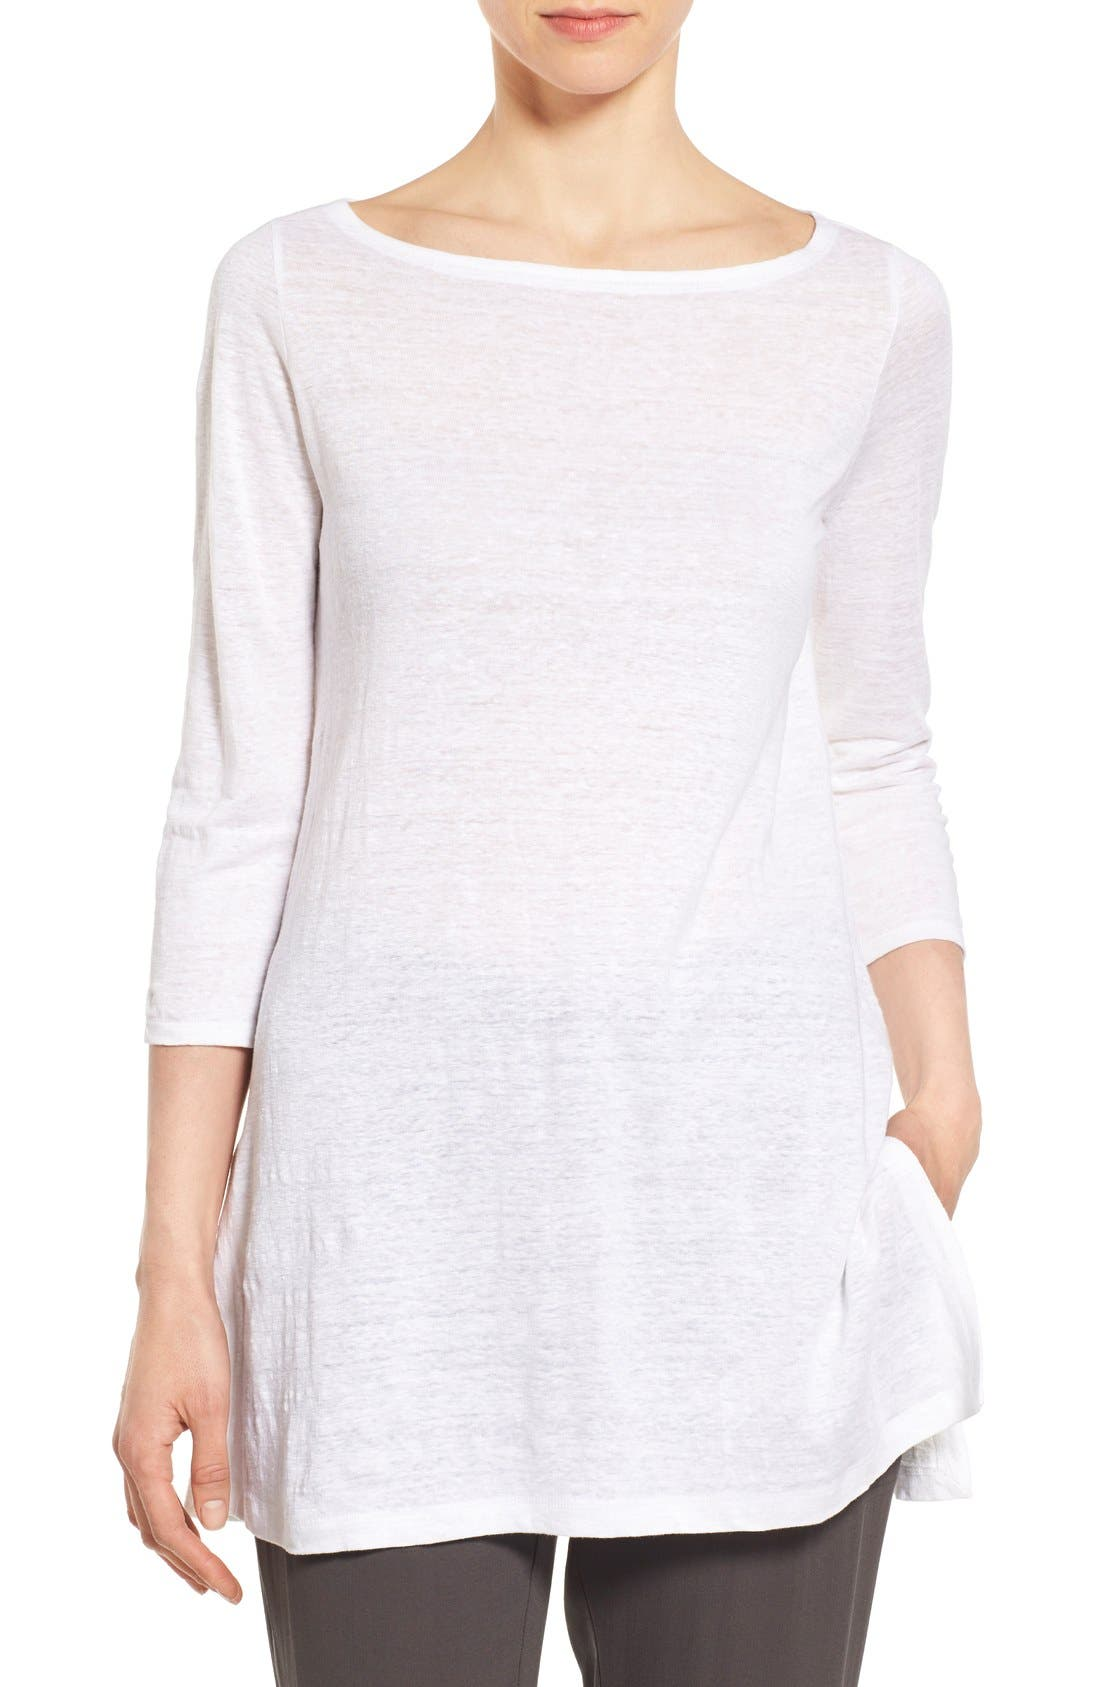 Alternate Image 1 Selected - Eileen Fisher Bateau Neck Organic Linen Tunic (Regular & Petite)